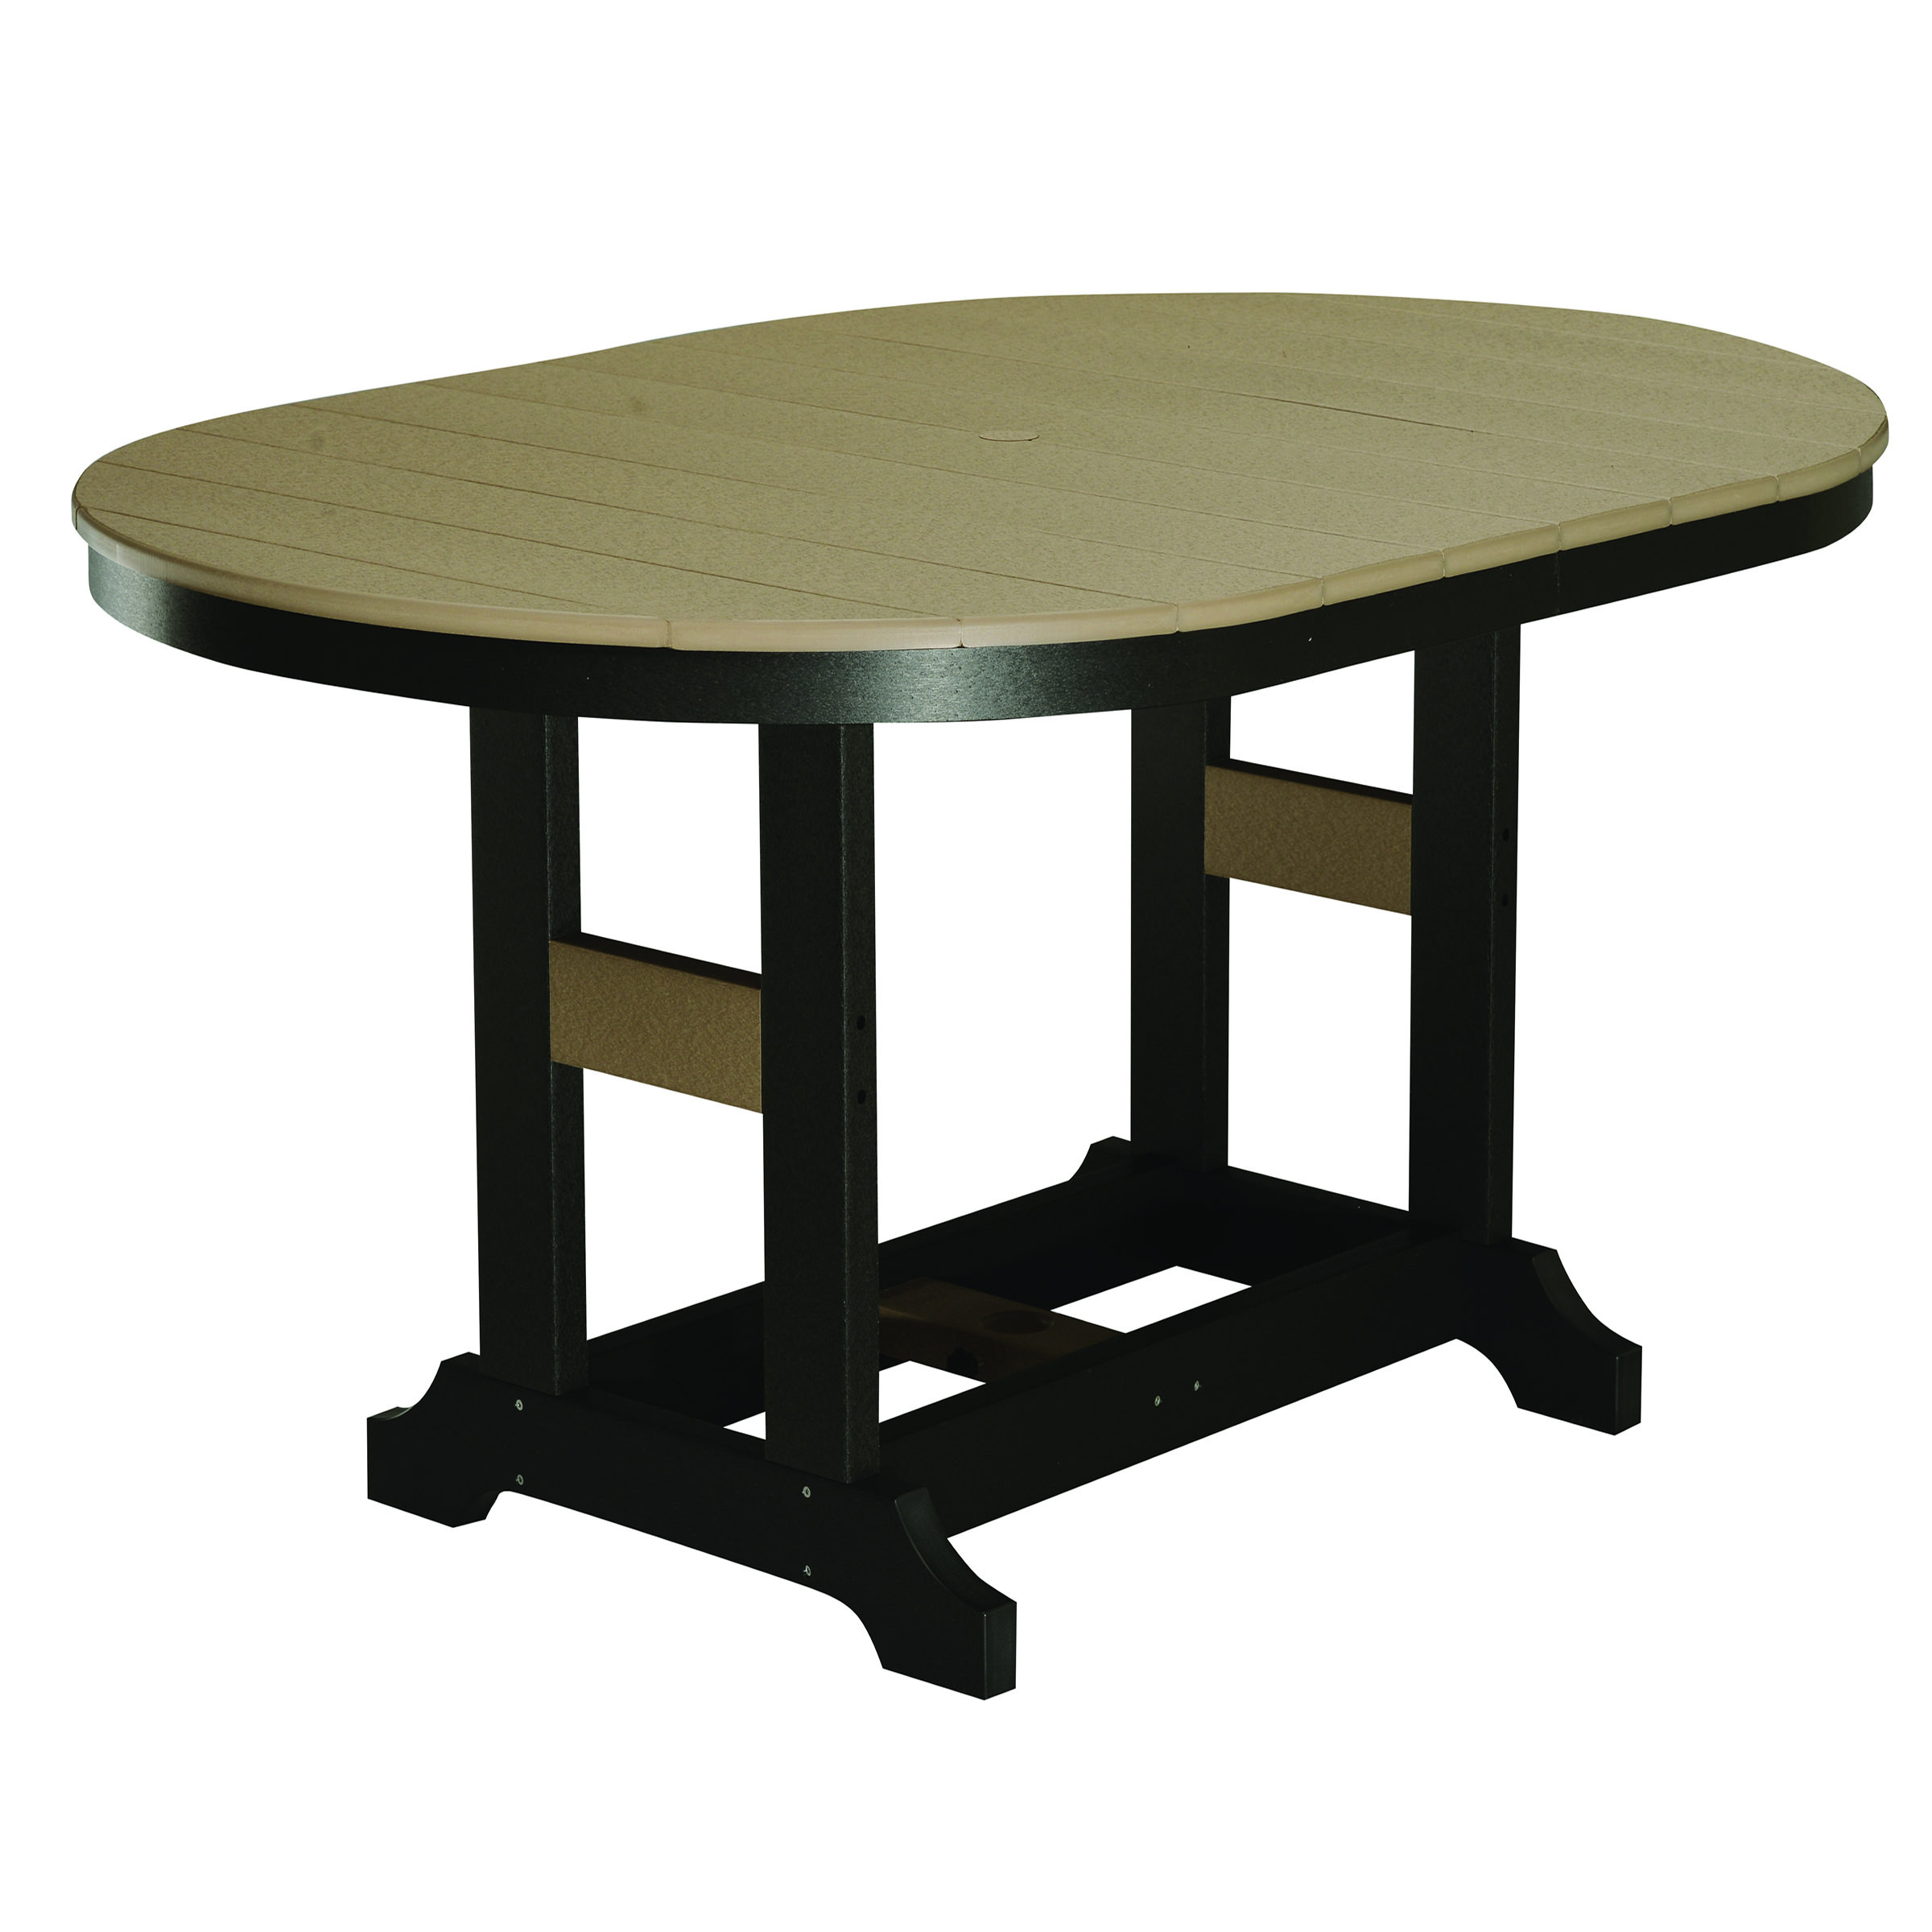 Garden Classic 44 x 64 in Oval Bar Table